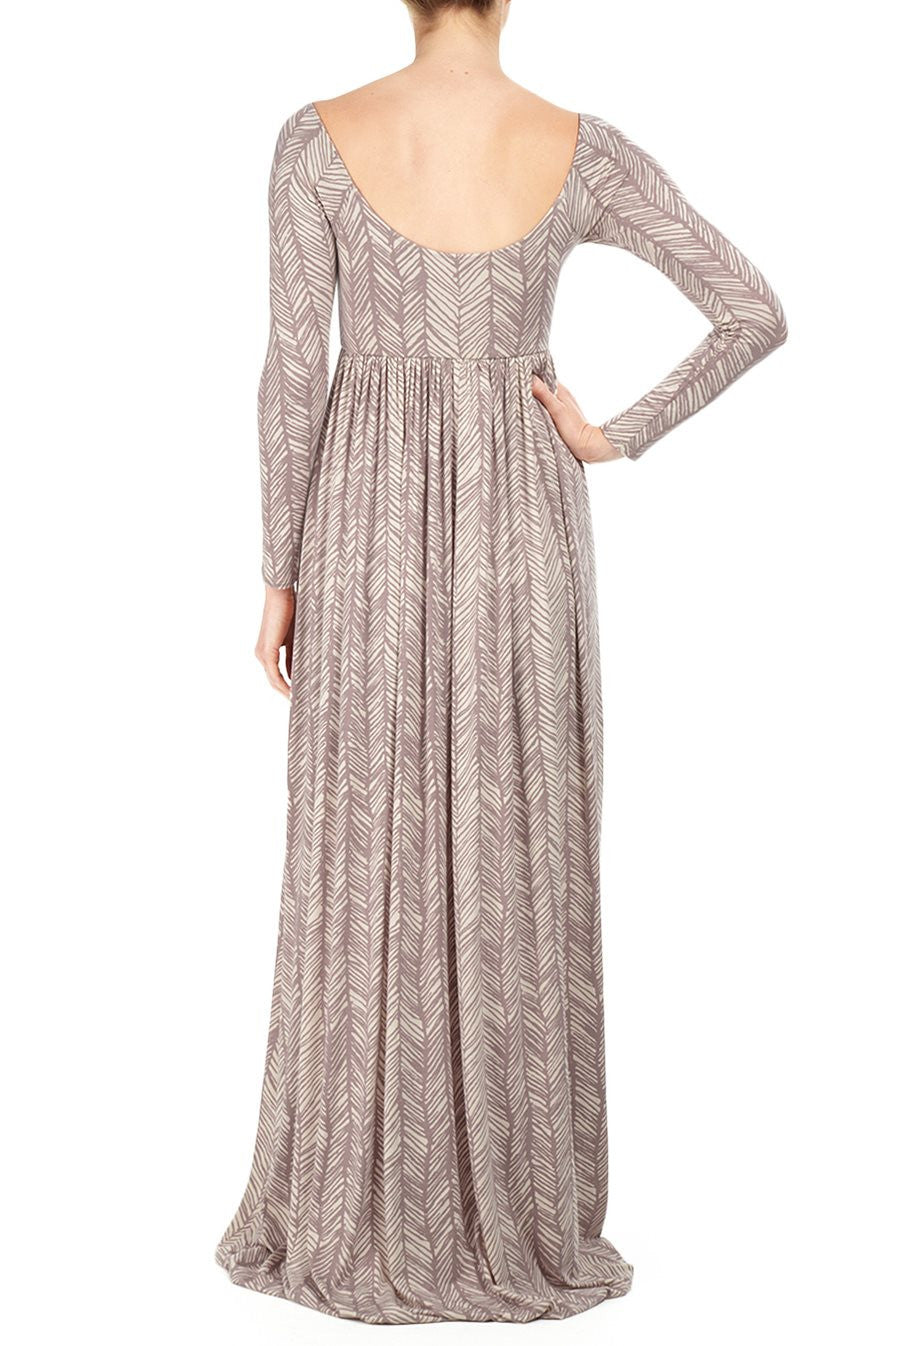 ISA DRESS PRINT - TAUPE LADDER